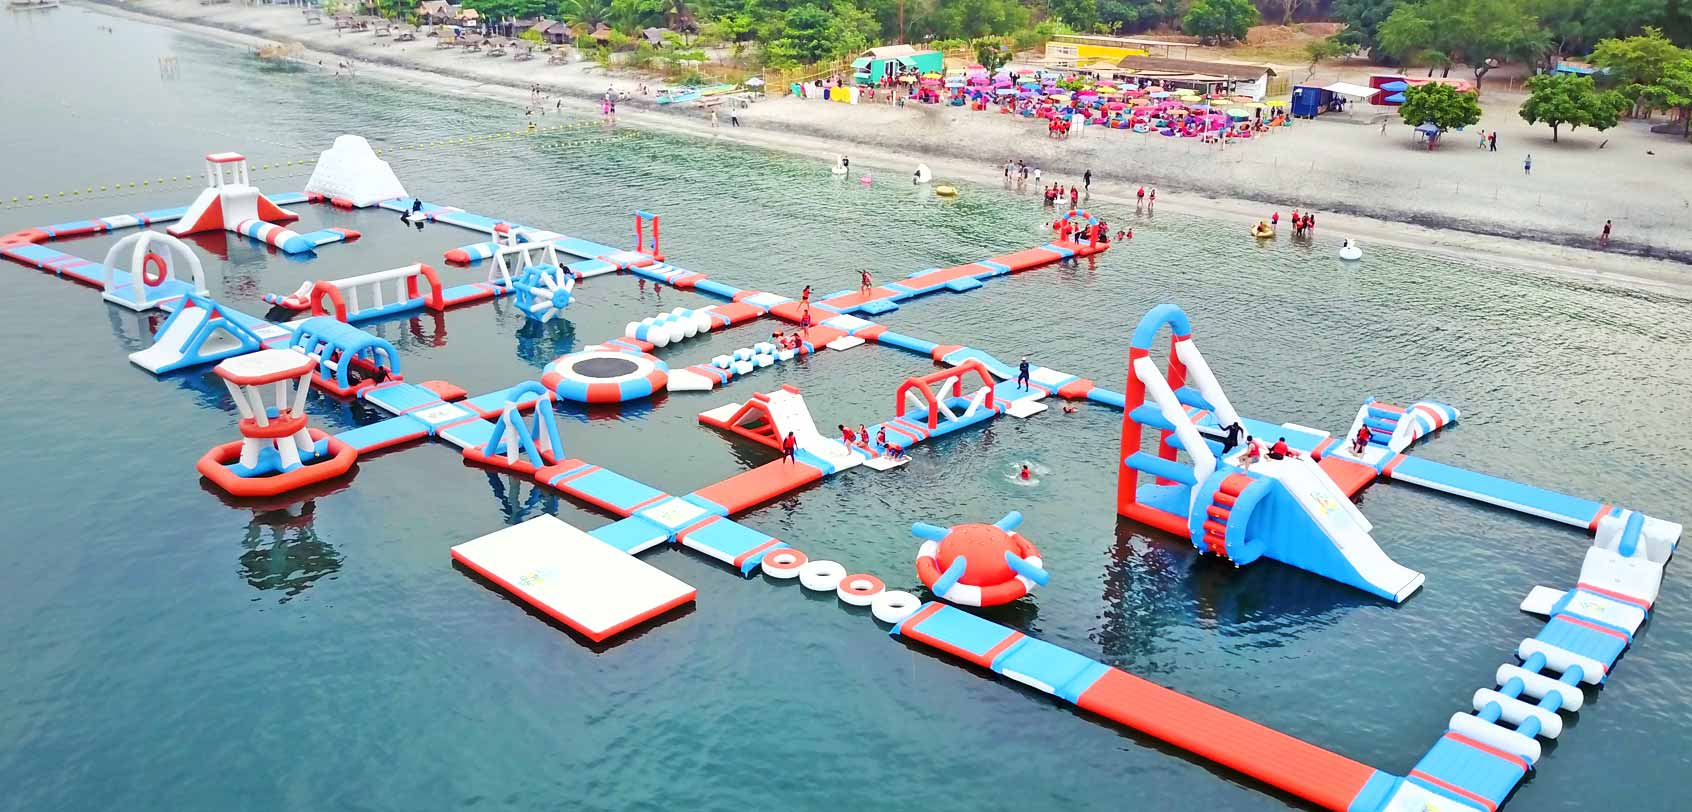 inflatable-island-water-playground-float-philippines-drone